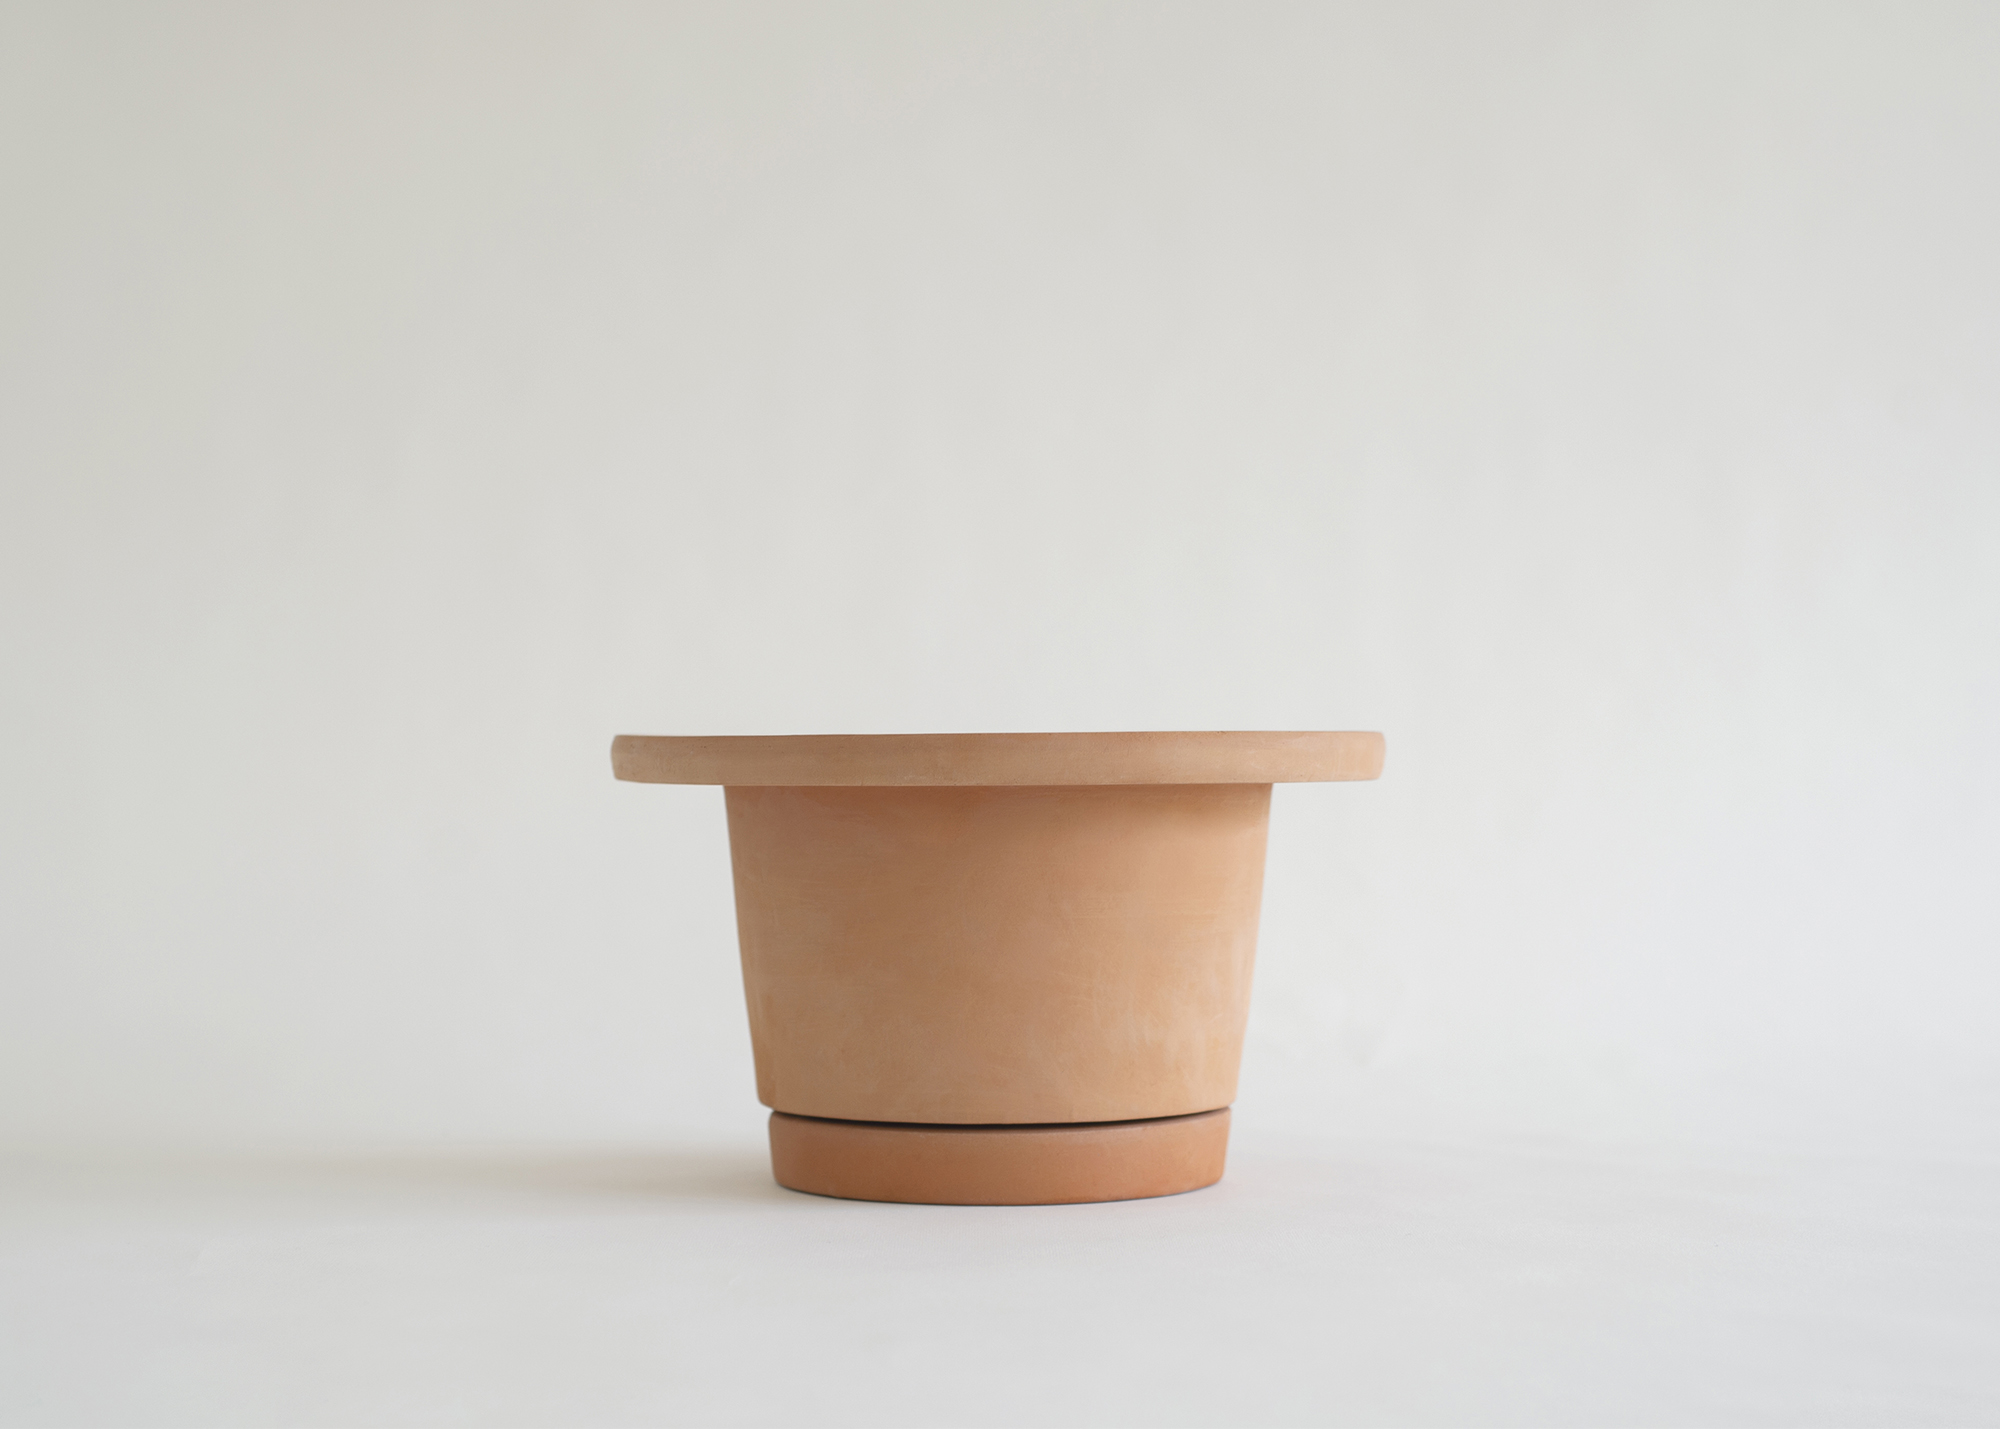 Thom Fougere EQ3 Terracotta Planter